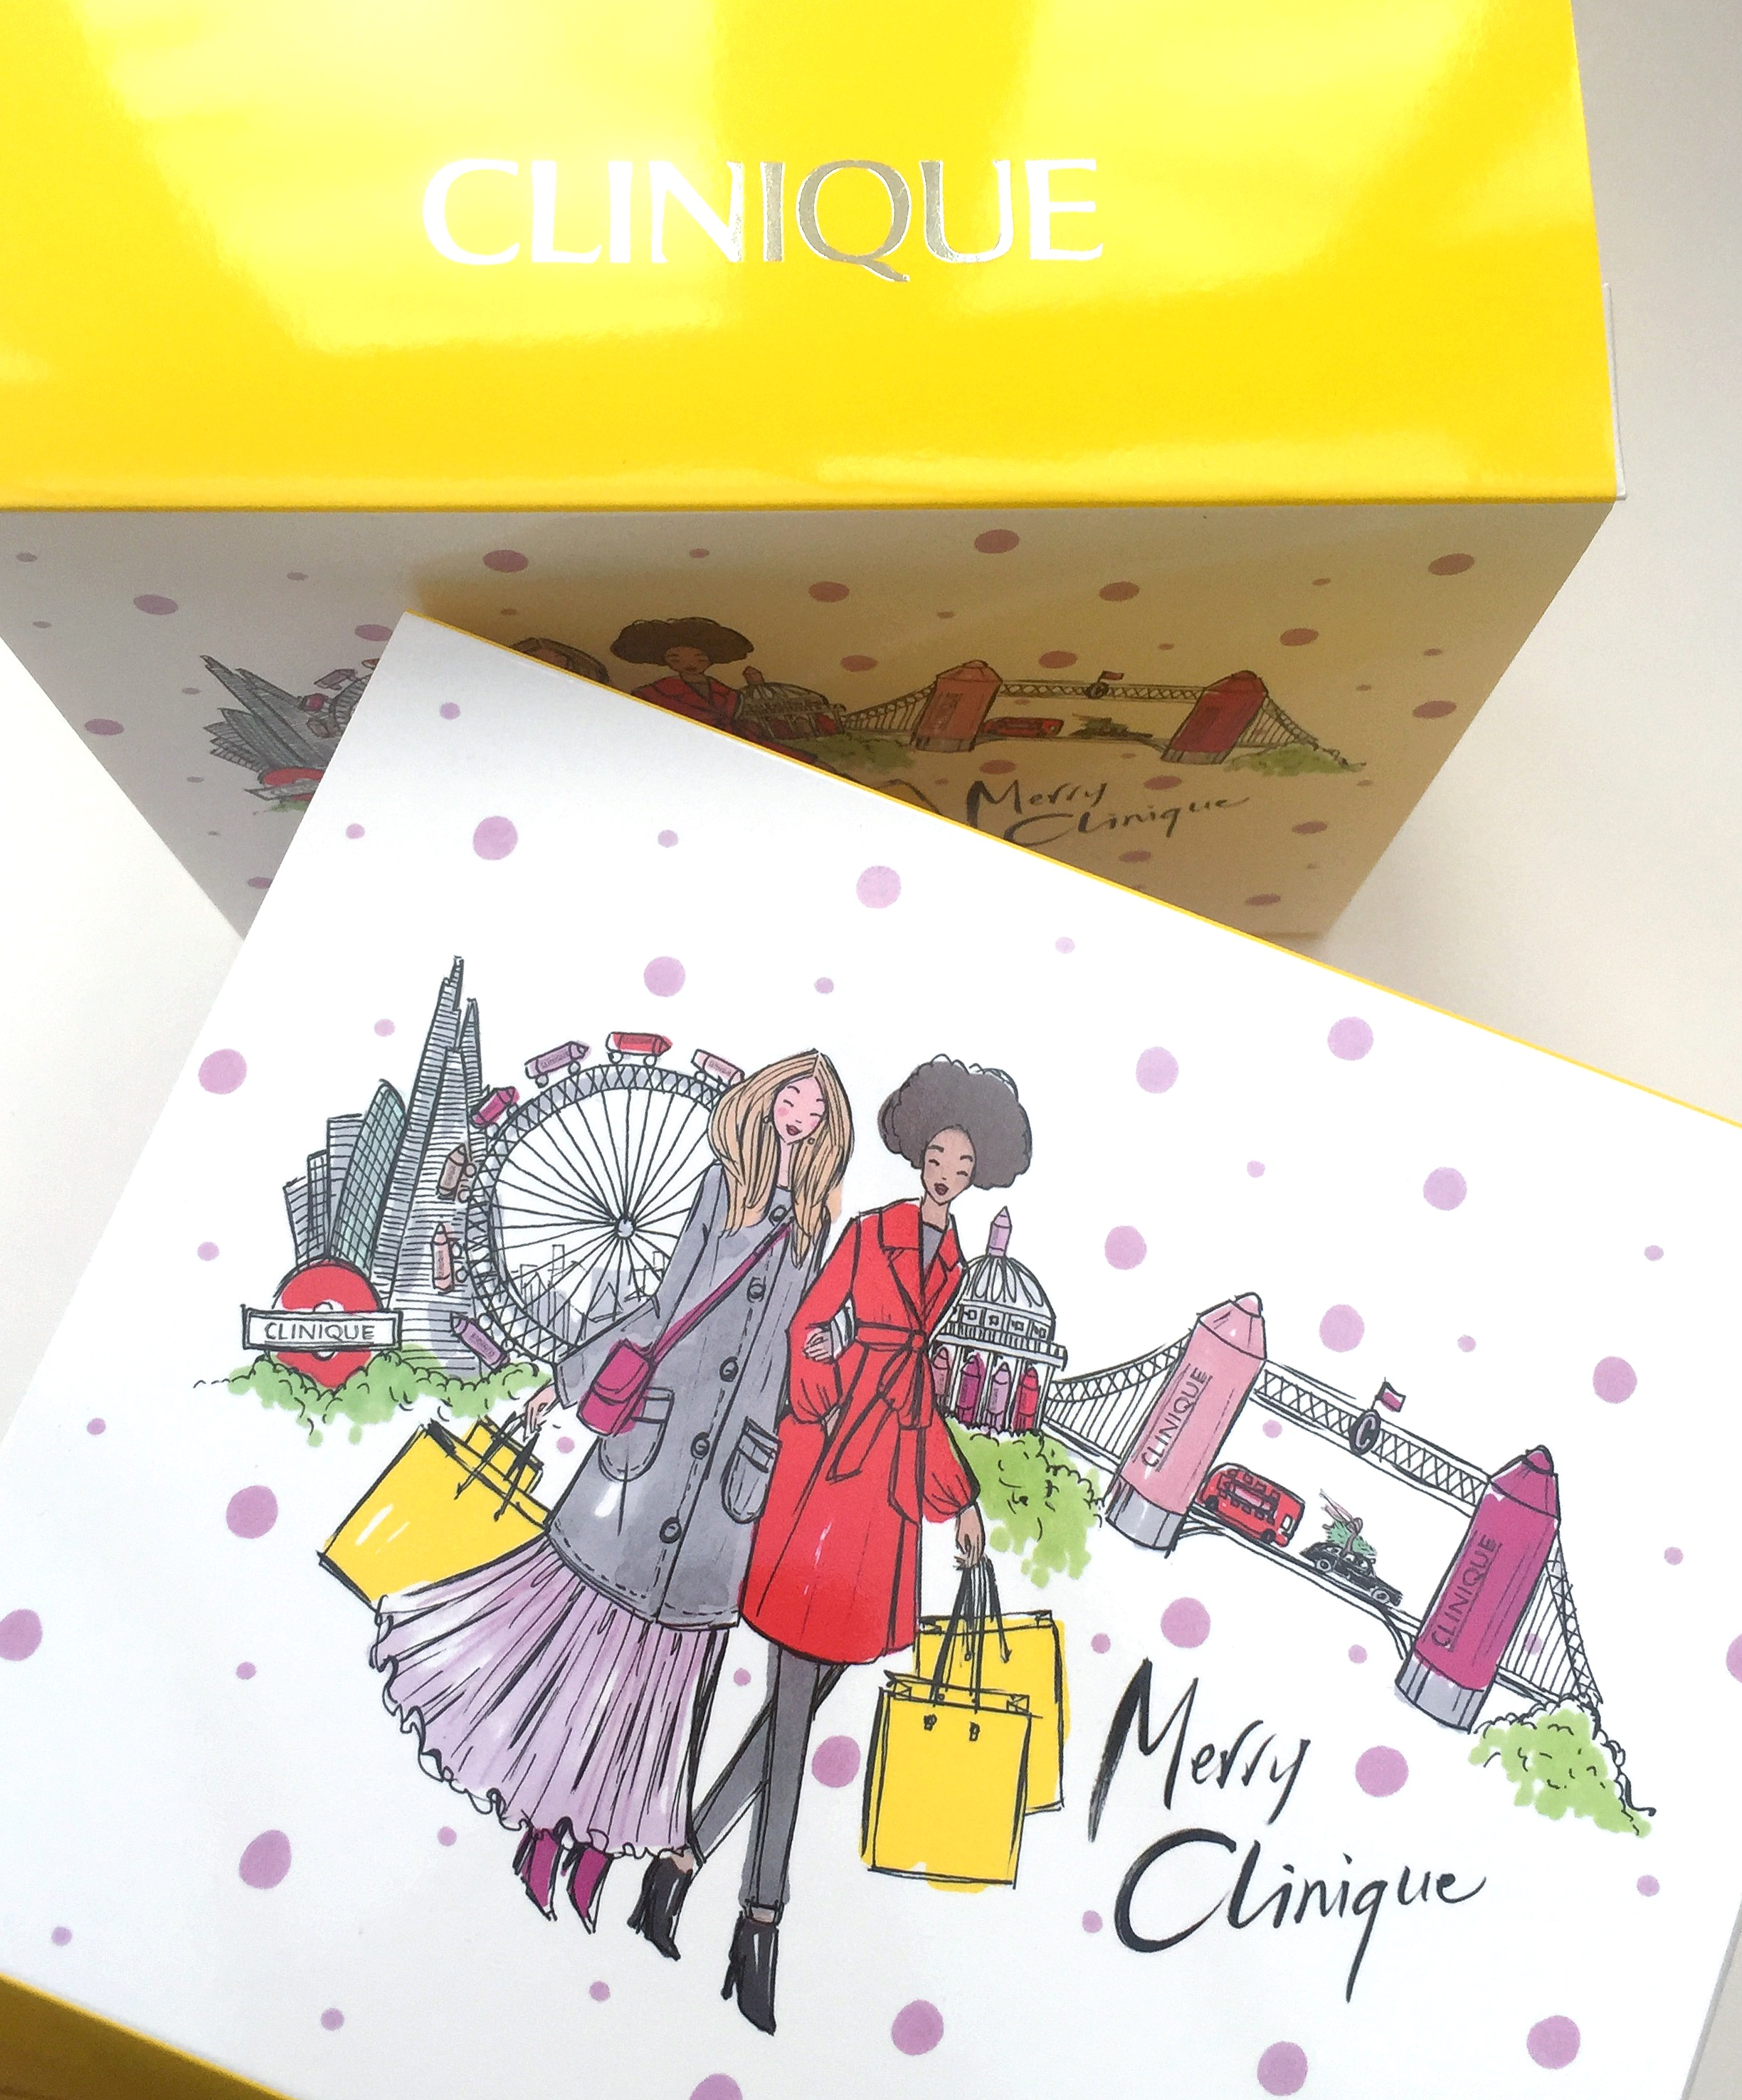 Commissioned by Clinique - Limited Edition Packaging at Selfridges